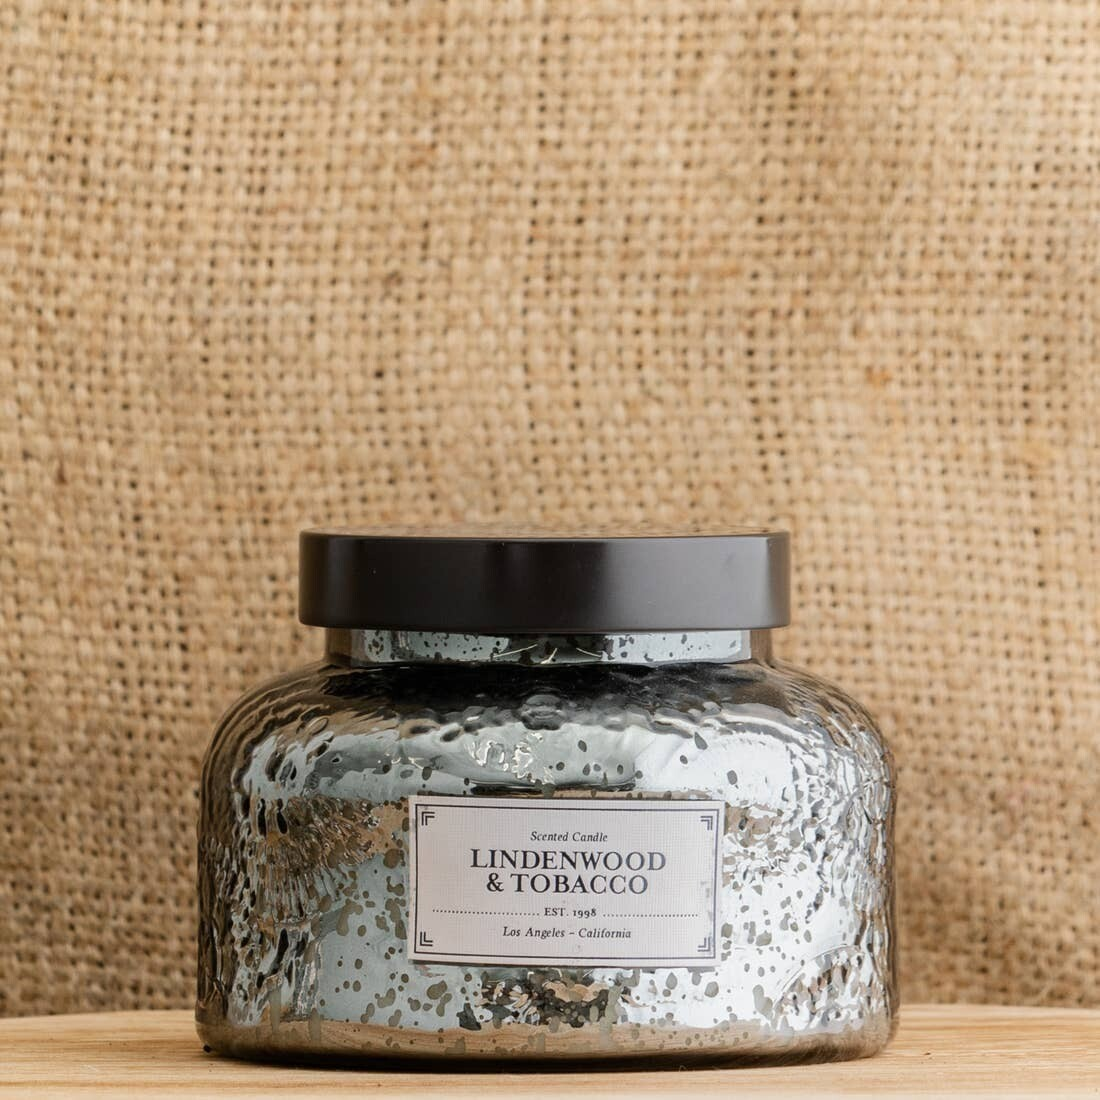 16 oz Lindenwood Tobacco Candle